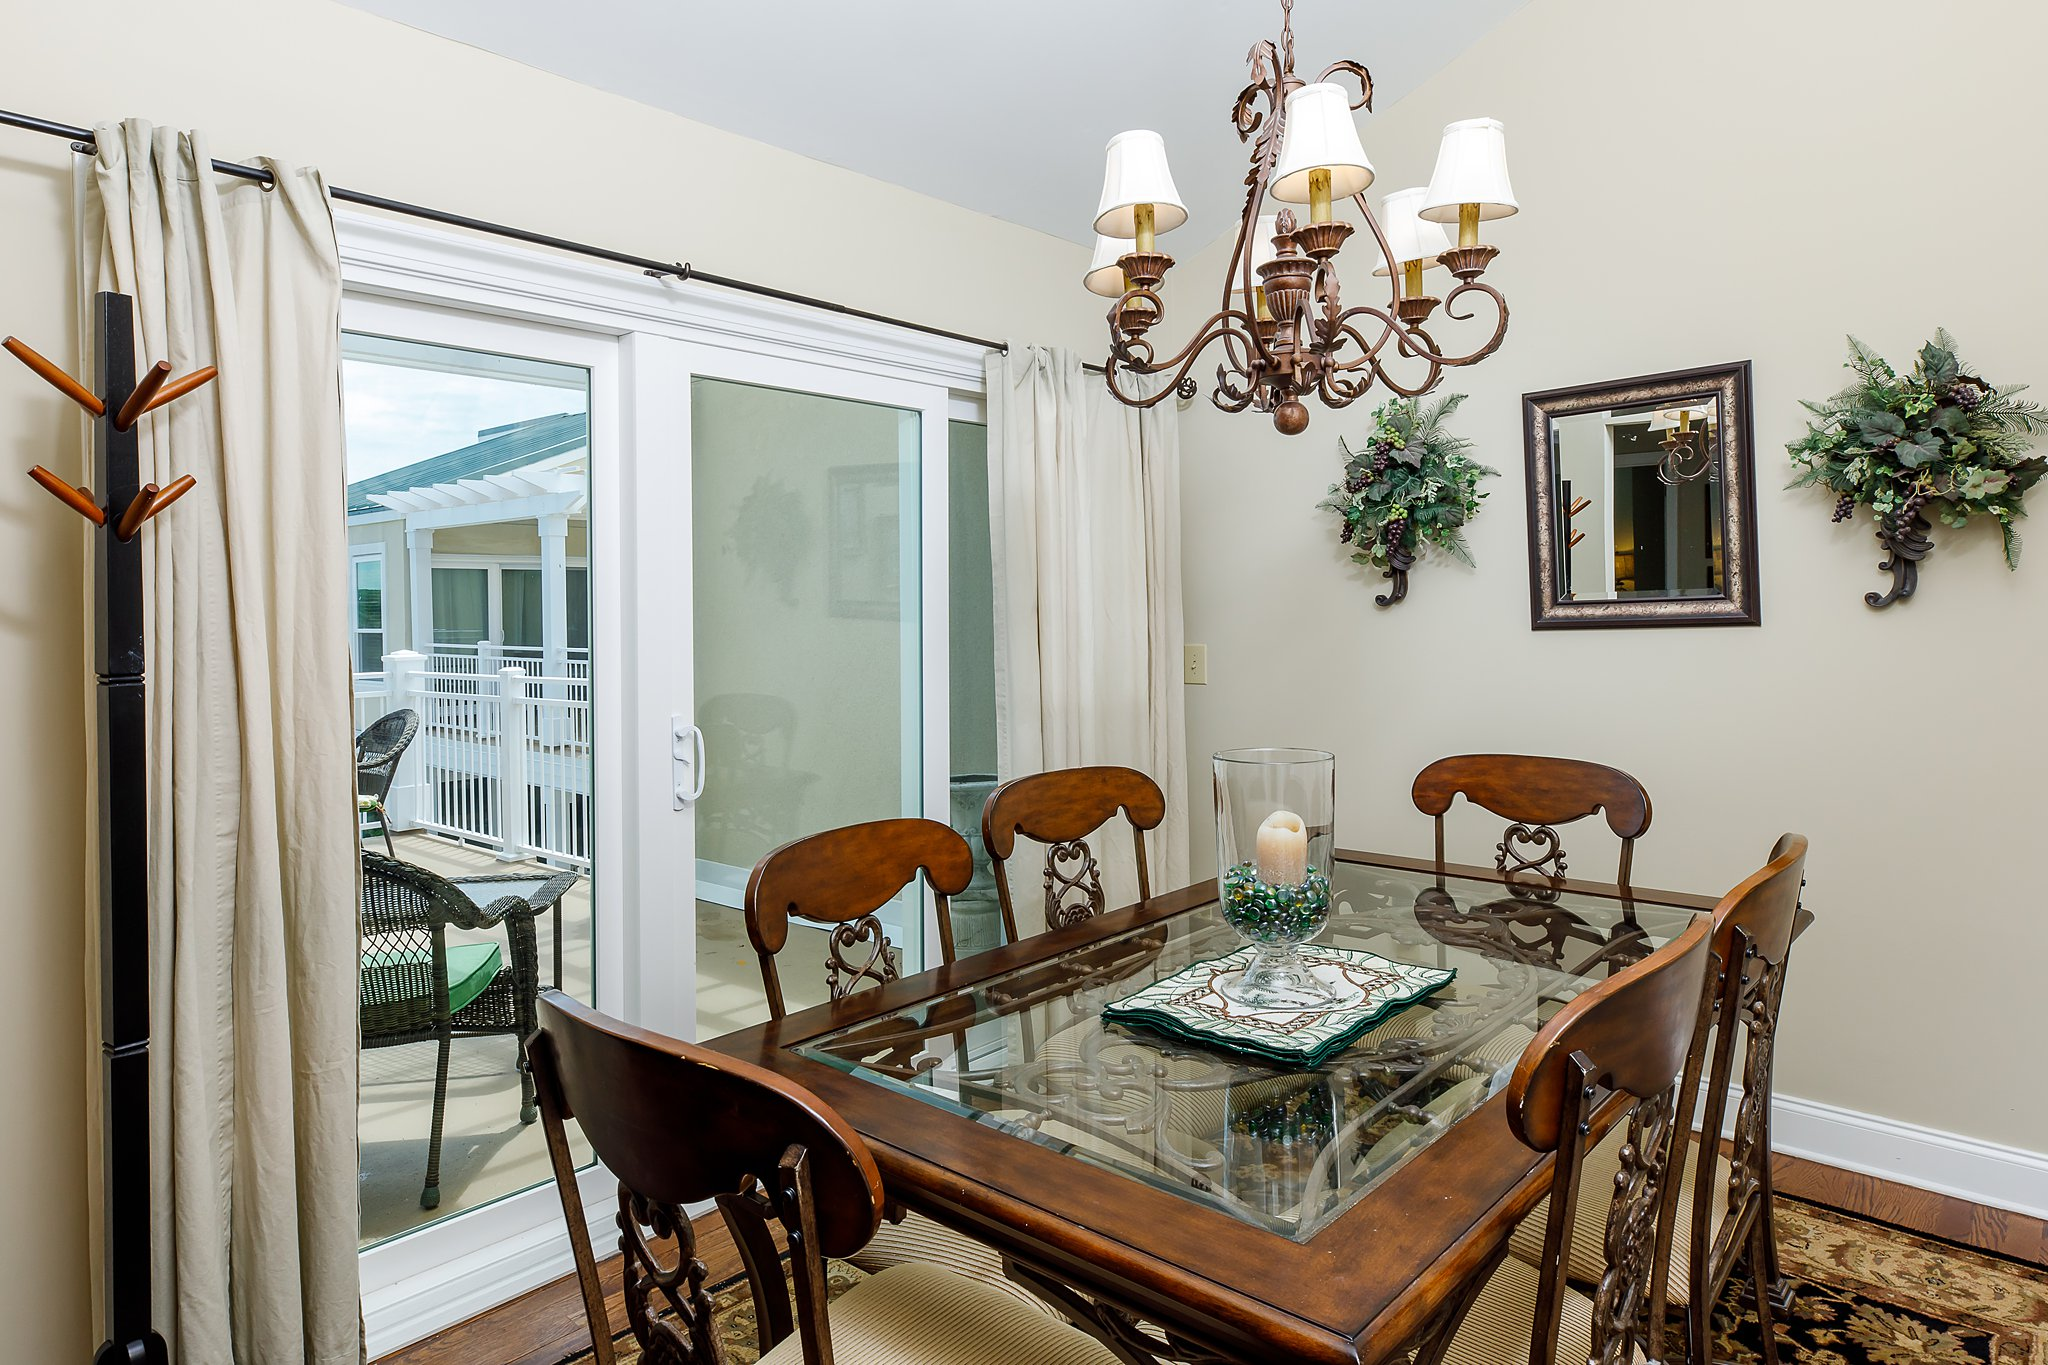 after photos real estate photography with better lighting and angles